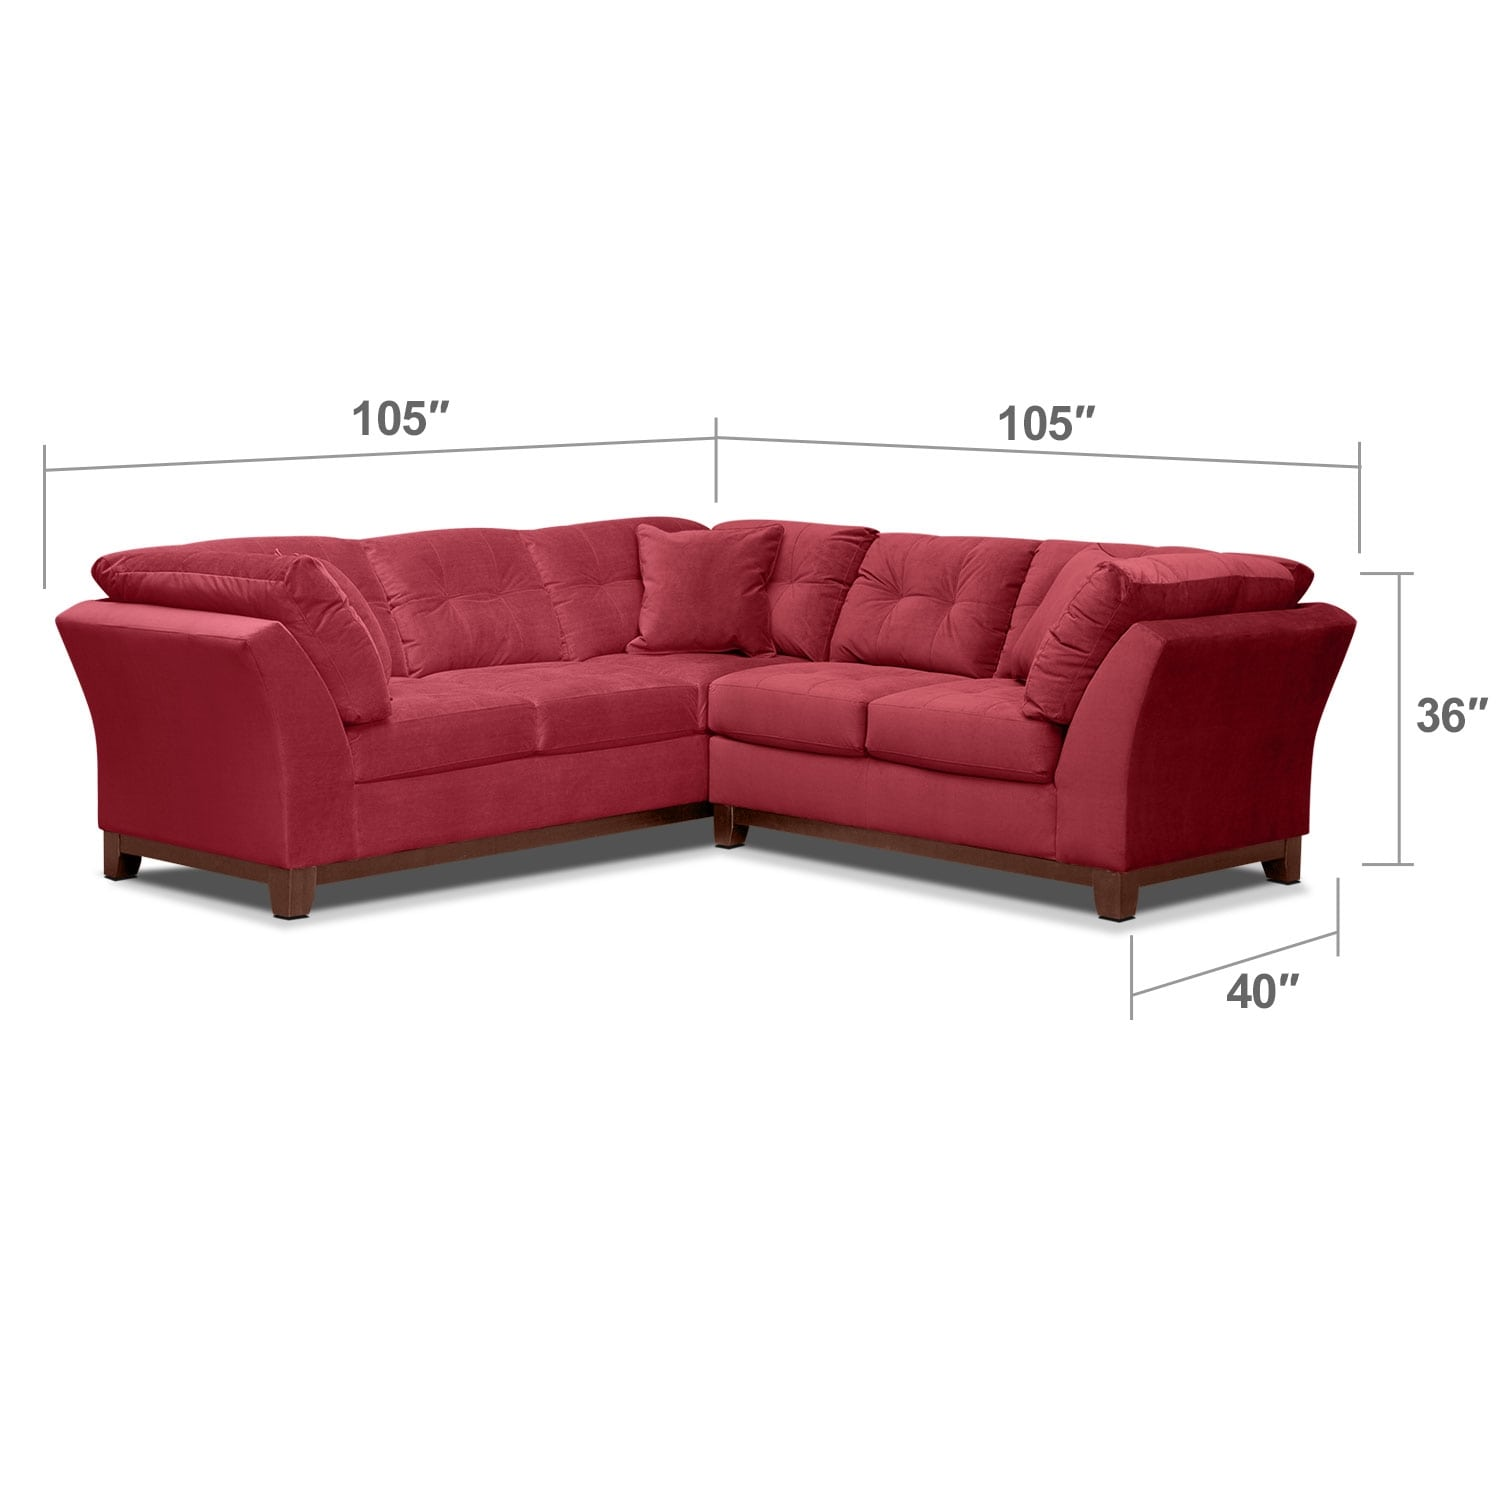 Living Room Furniture - Solace Poppy II 2 Pc. Sectional (Alternate II Reverse)